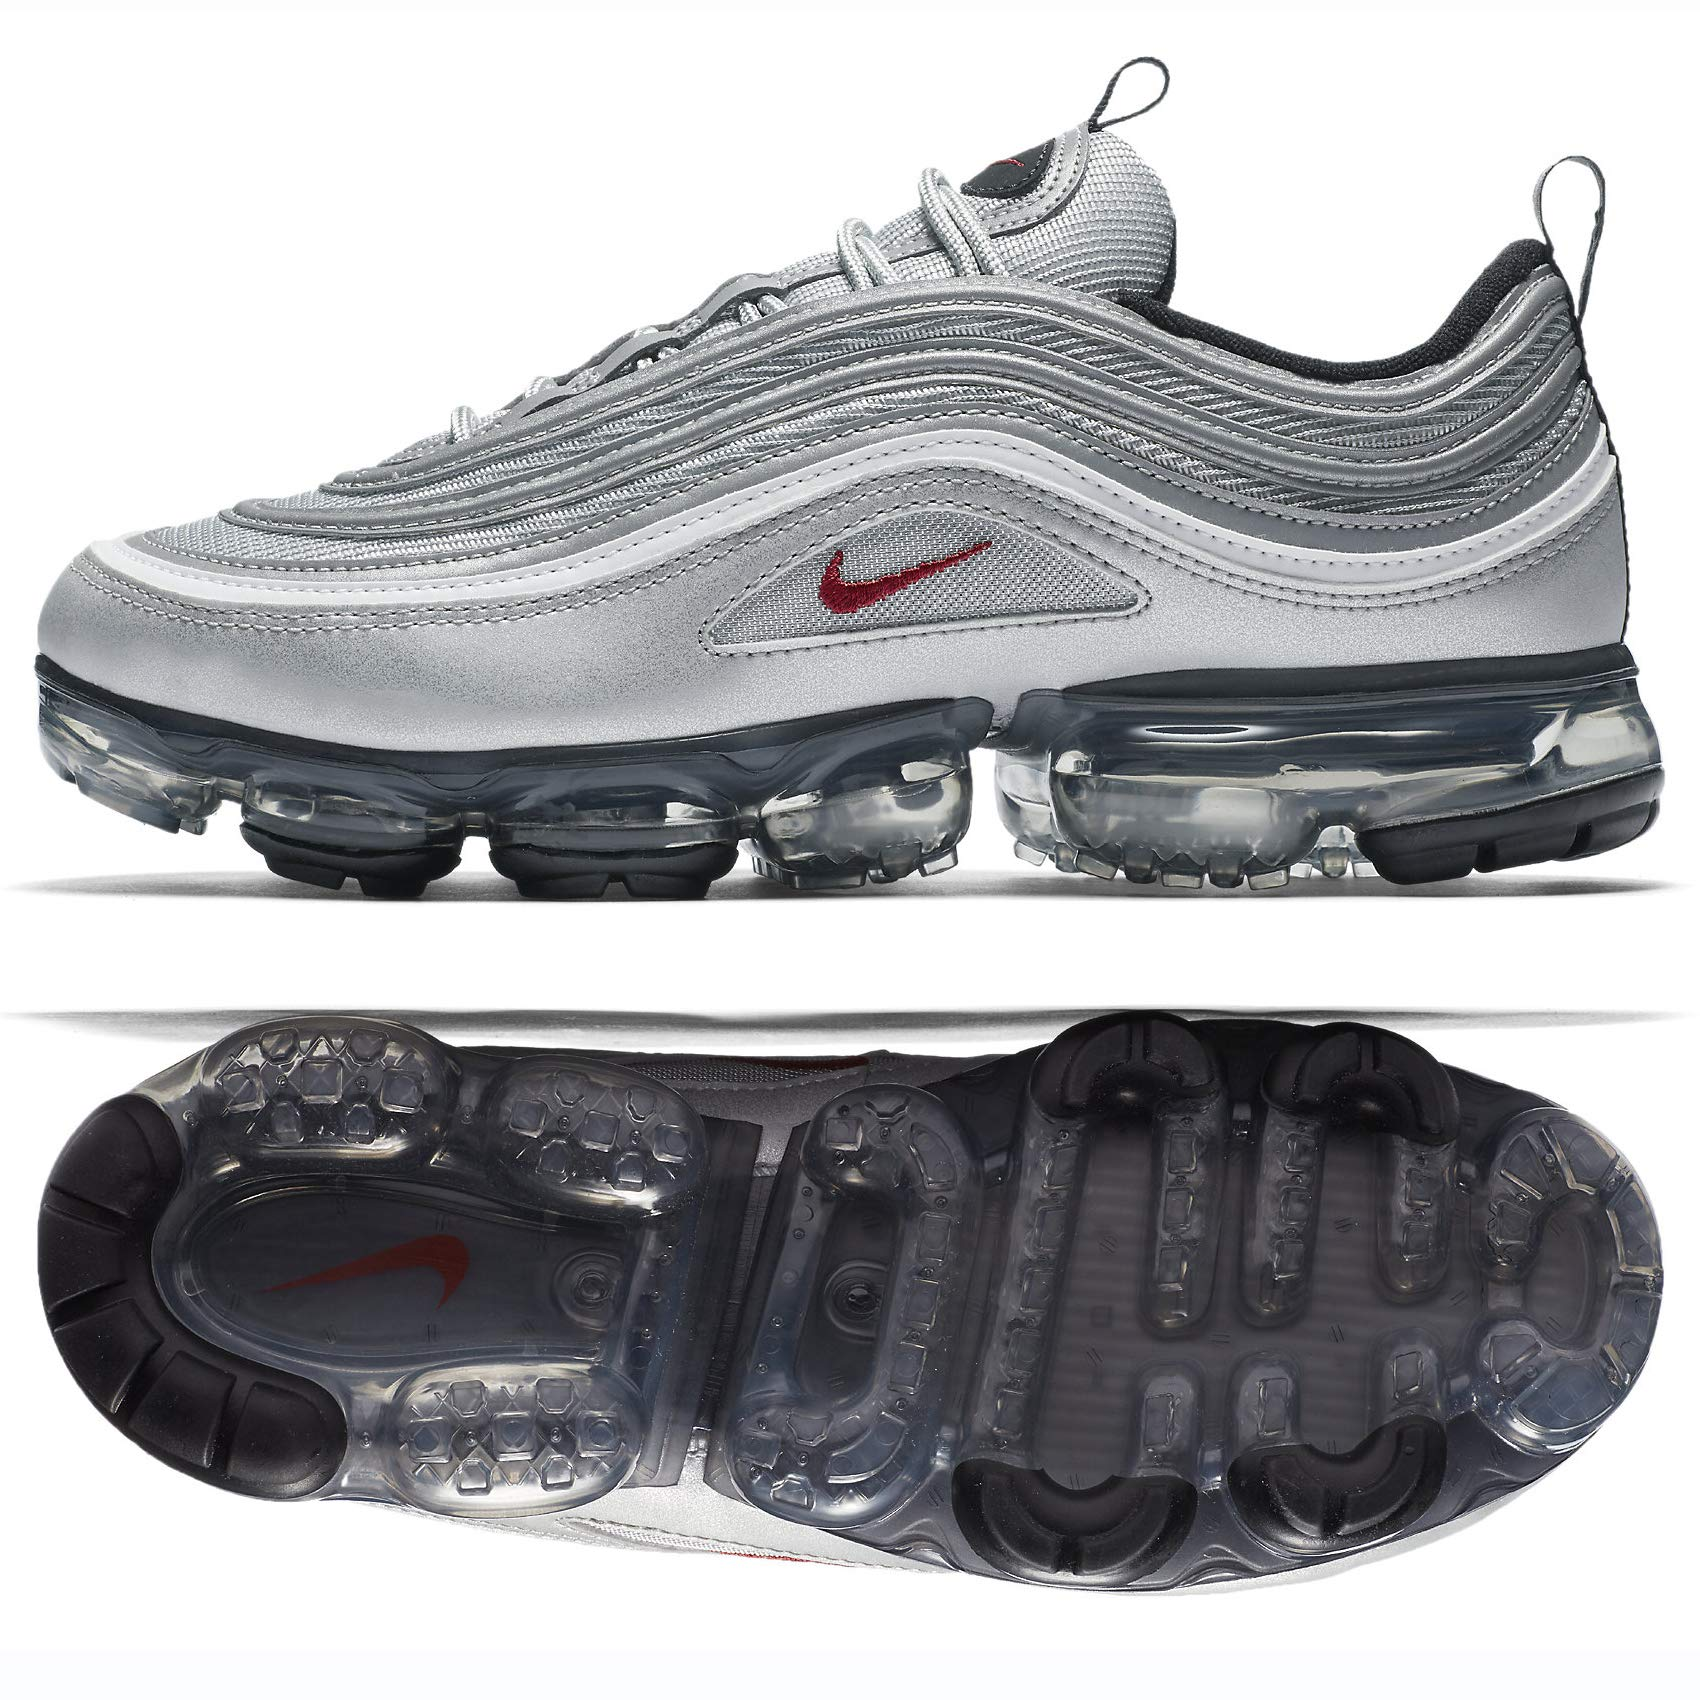 sports shoes 69ea3 c3ce0 Nike Air Vapormax 97 Mens Running Trainers AJ7291 Sneakers Shoes (UK 9.5 US  10.5 EU 44.5, Metallic Silver Varisty red 002)